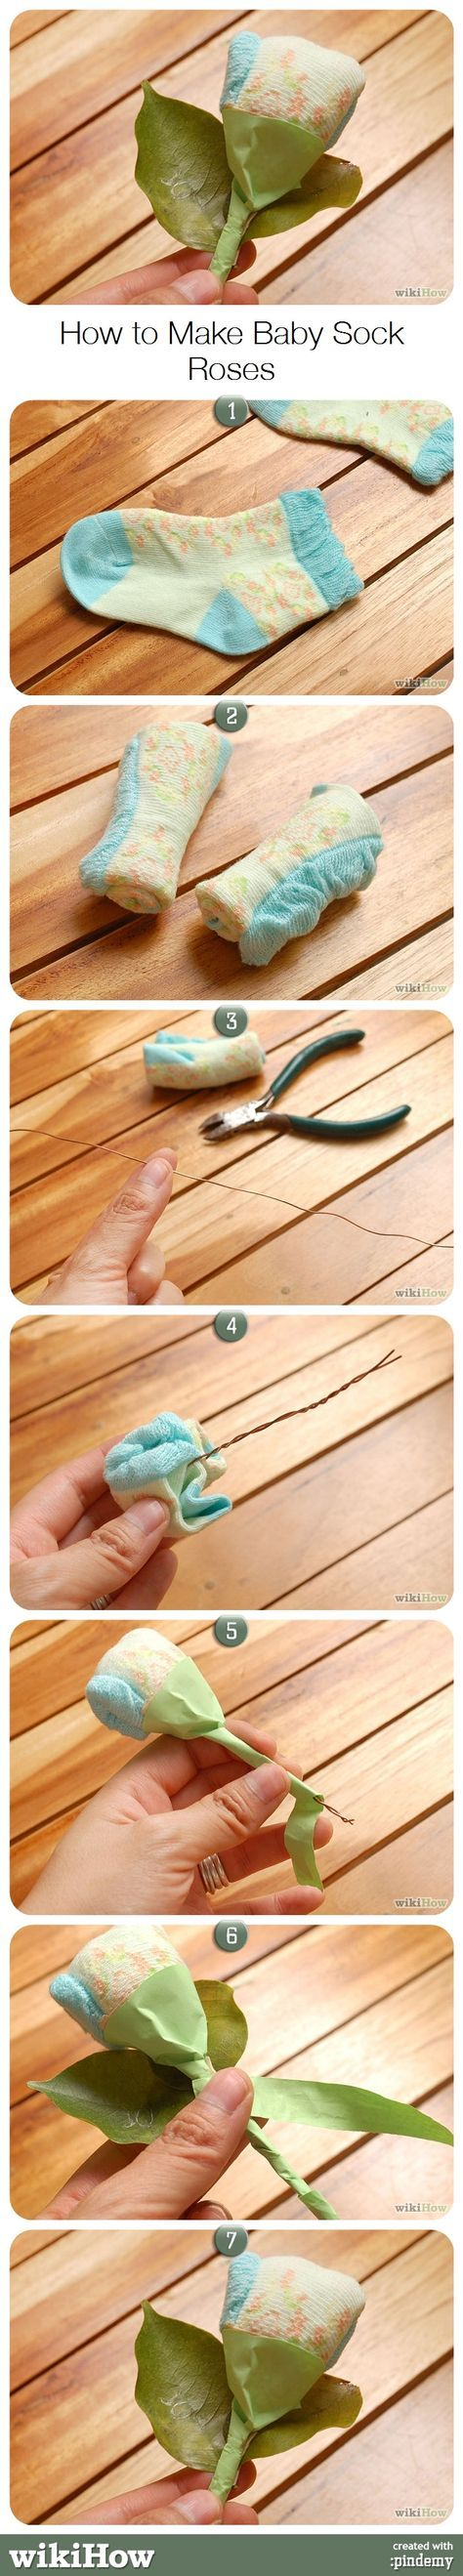 How to Make Baby Sock Roses